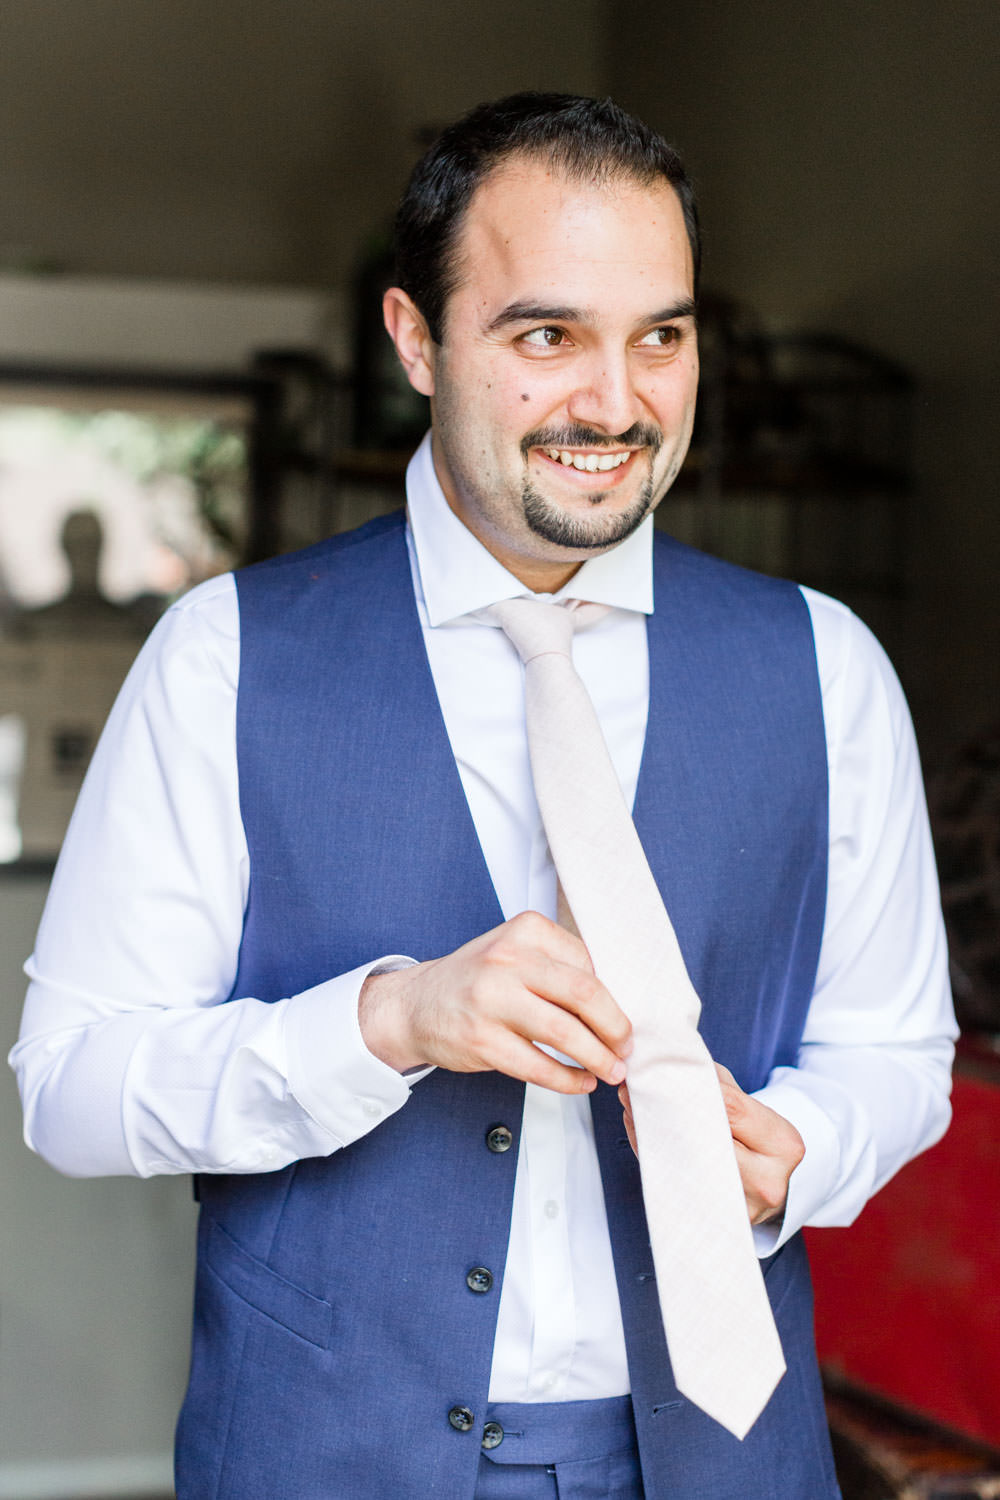 Groom smiling while putting on tie at Ethereal Open Air Resort, Cavin Elizabeth Photography